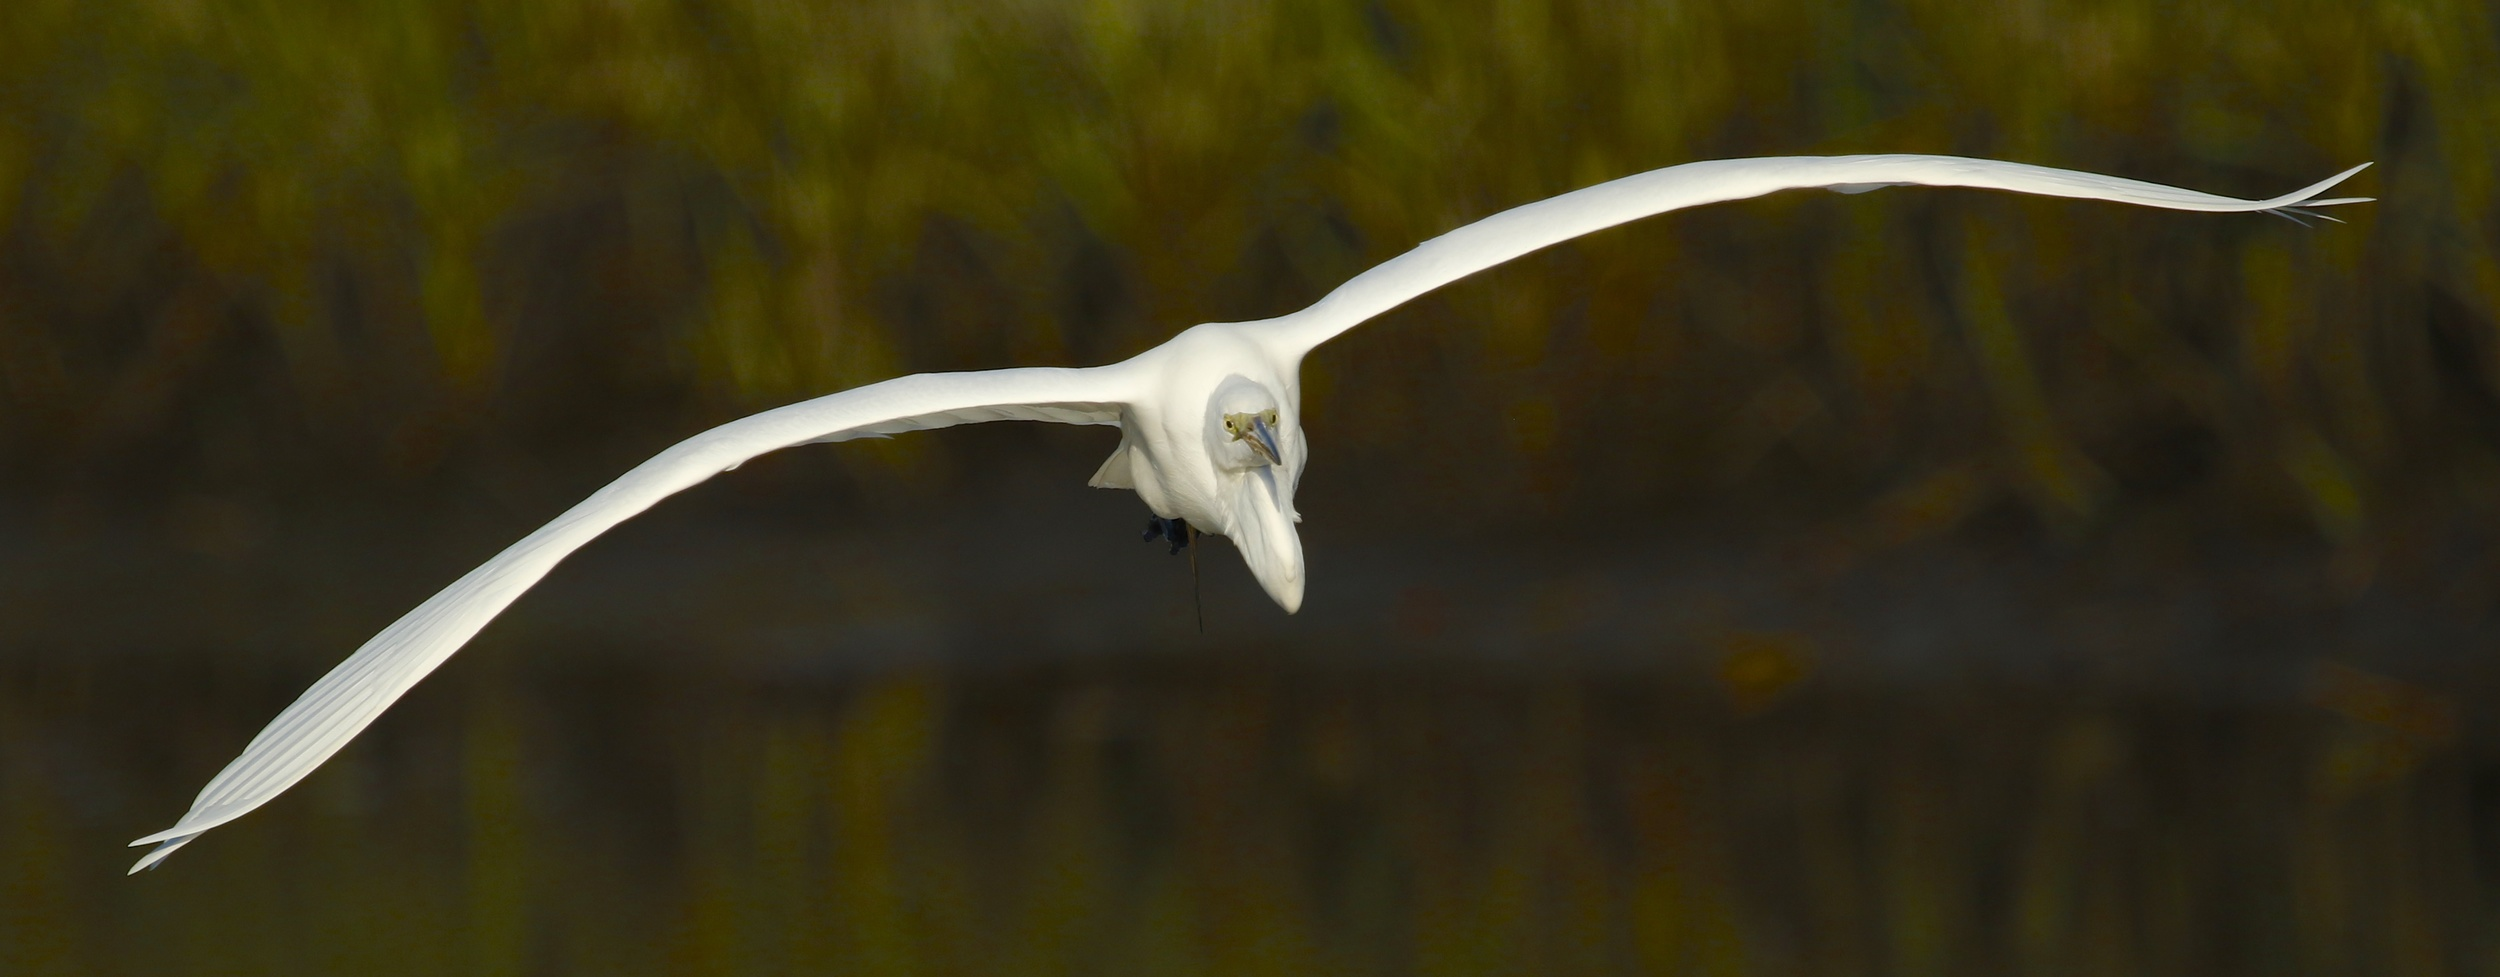 Suddenly a Great Egret comes flying around the bend and does not see the Clapper Rail ….